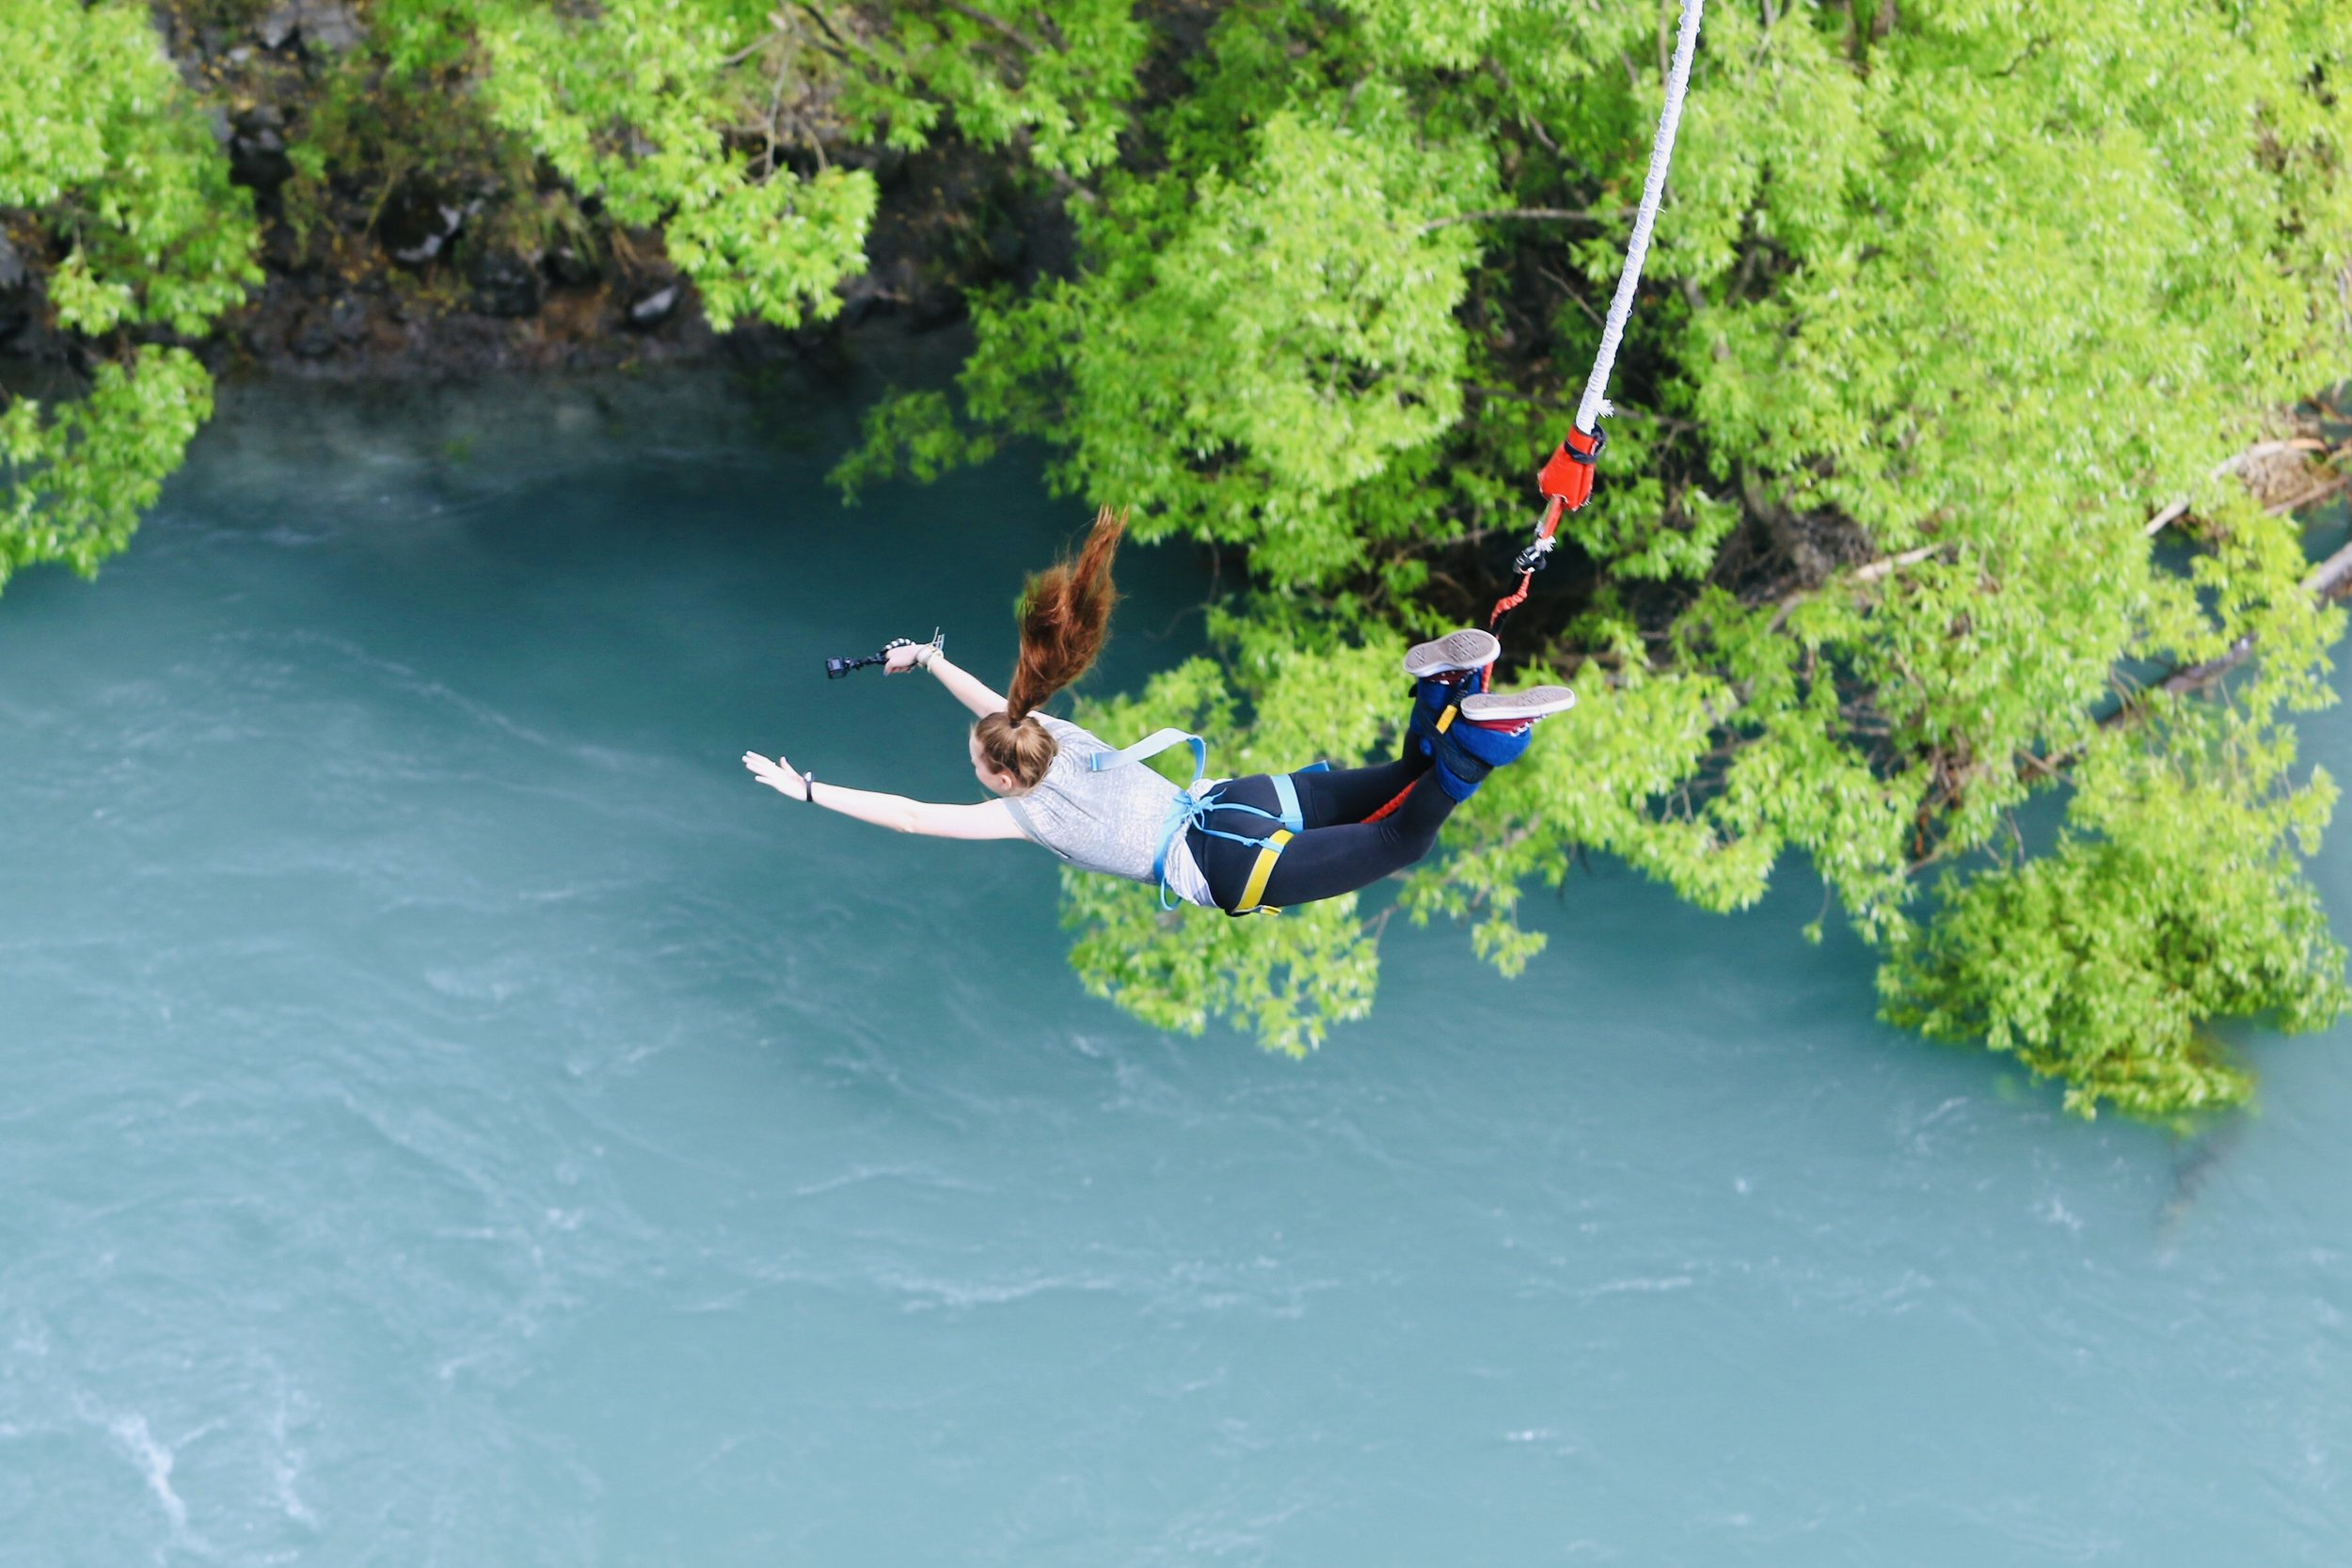 EdOdyssey Marketing Intern Amanda Lowrey bungee jumping, with her GoPro in hand, over the Kawarau river in Queenstown, NZ.